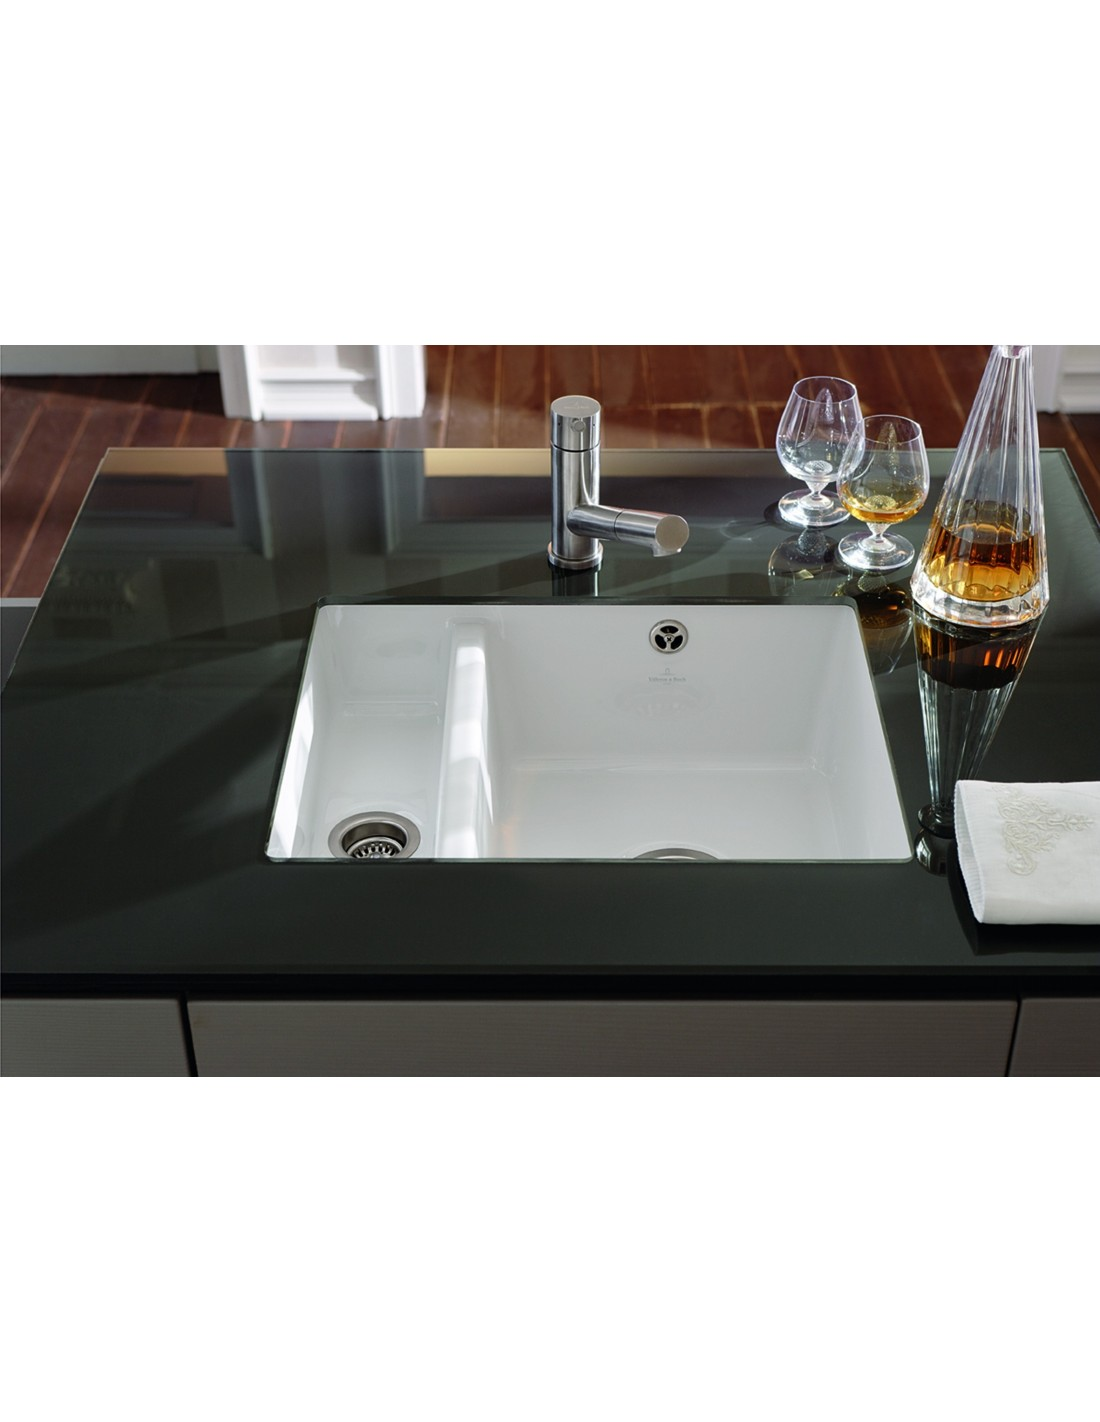 Ceramic Kitchen Sink Villeroy And Boch Subway 60xu Kitchen Sink Undermount 1 5